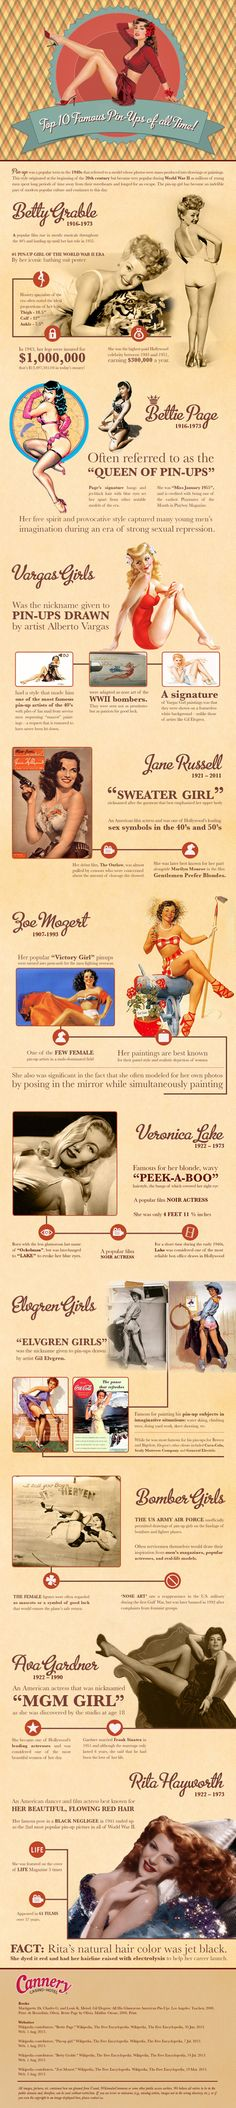 Top 10 Famous Pin-Ups Of All Time [INFOGRAPHIC] #pinup #famous